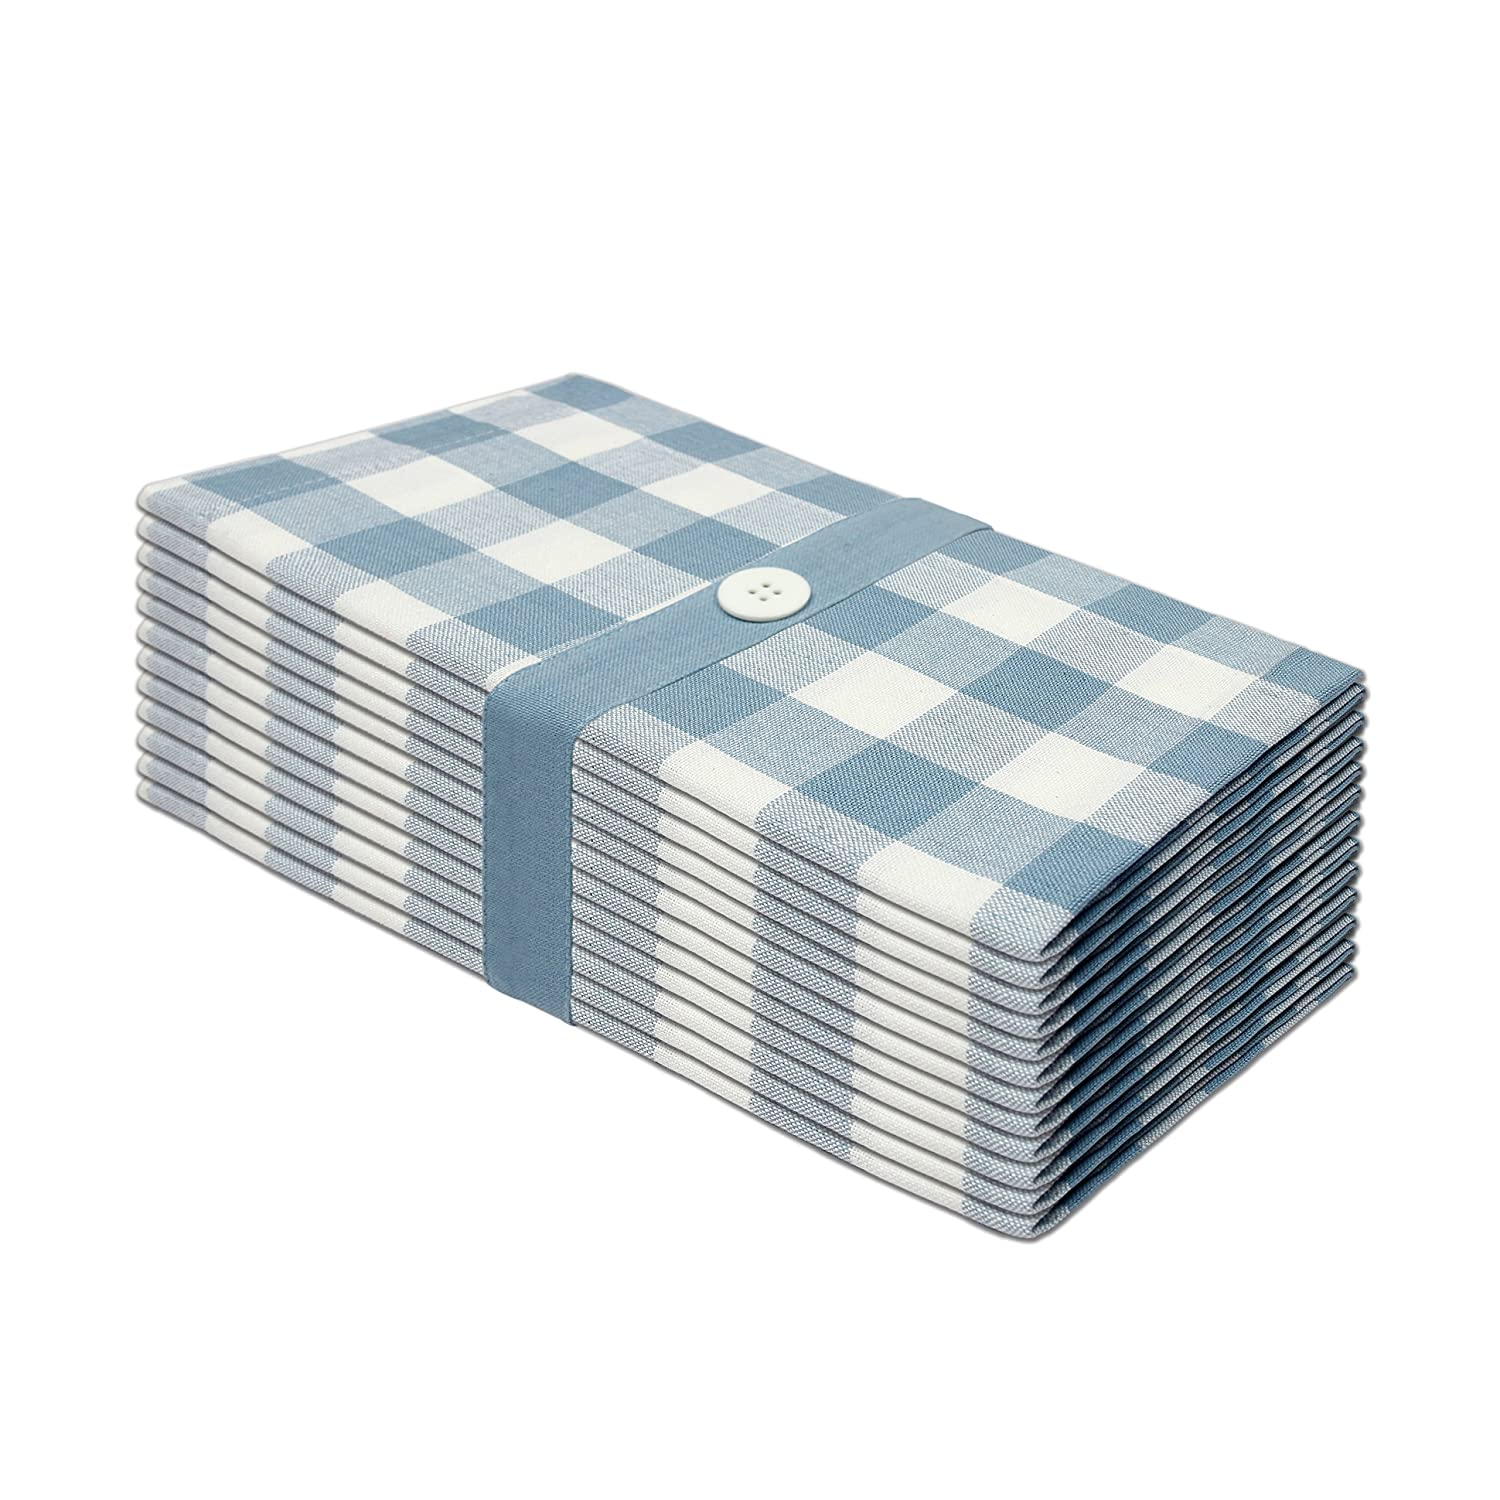 Blue gingham cloth napkins. #frenchcountry #decor #tablescape